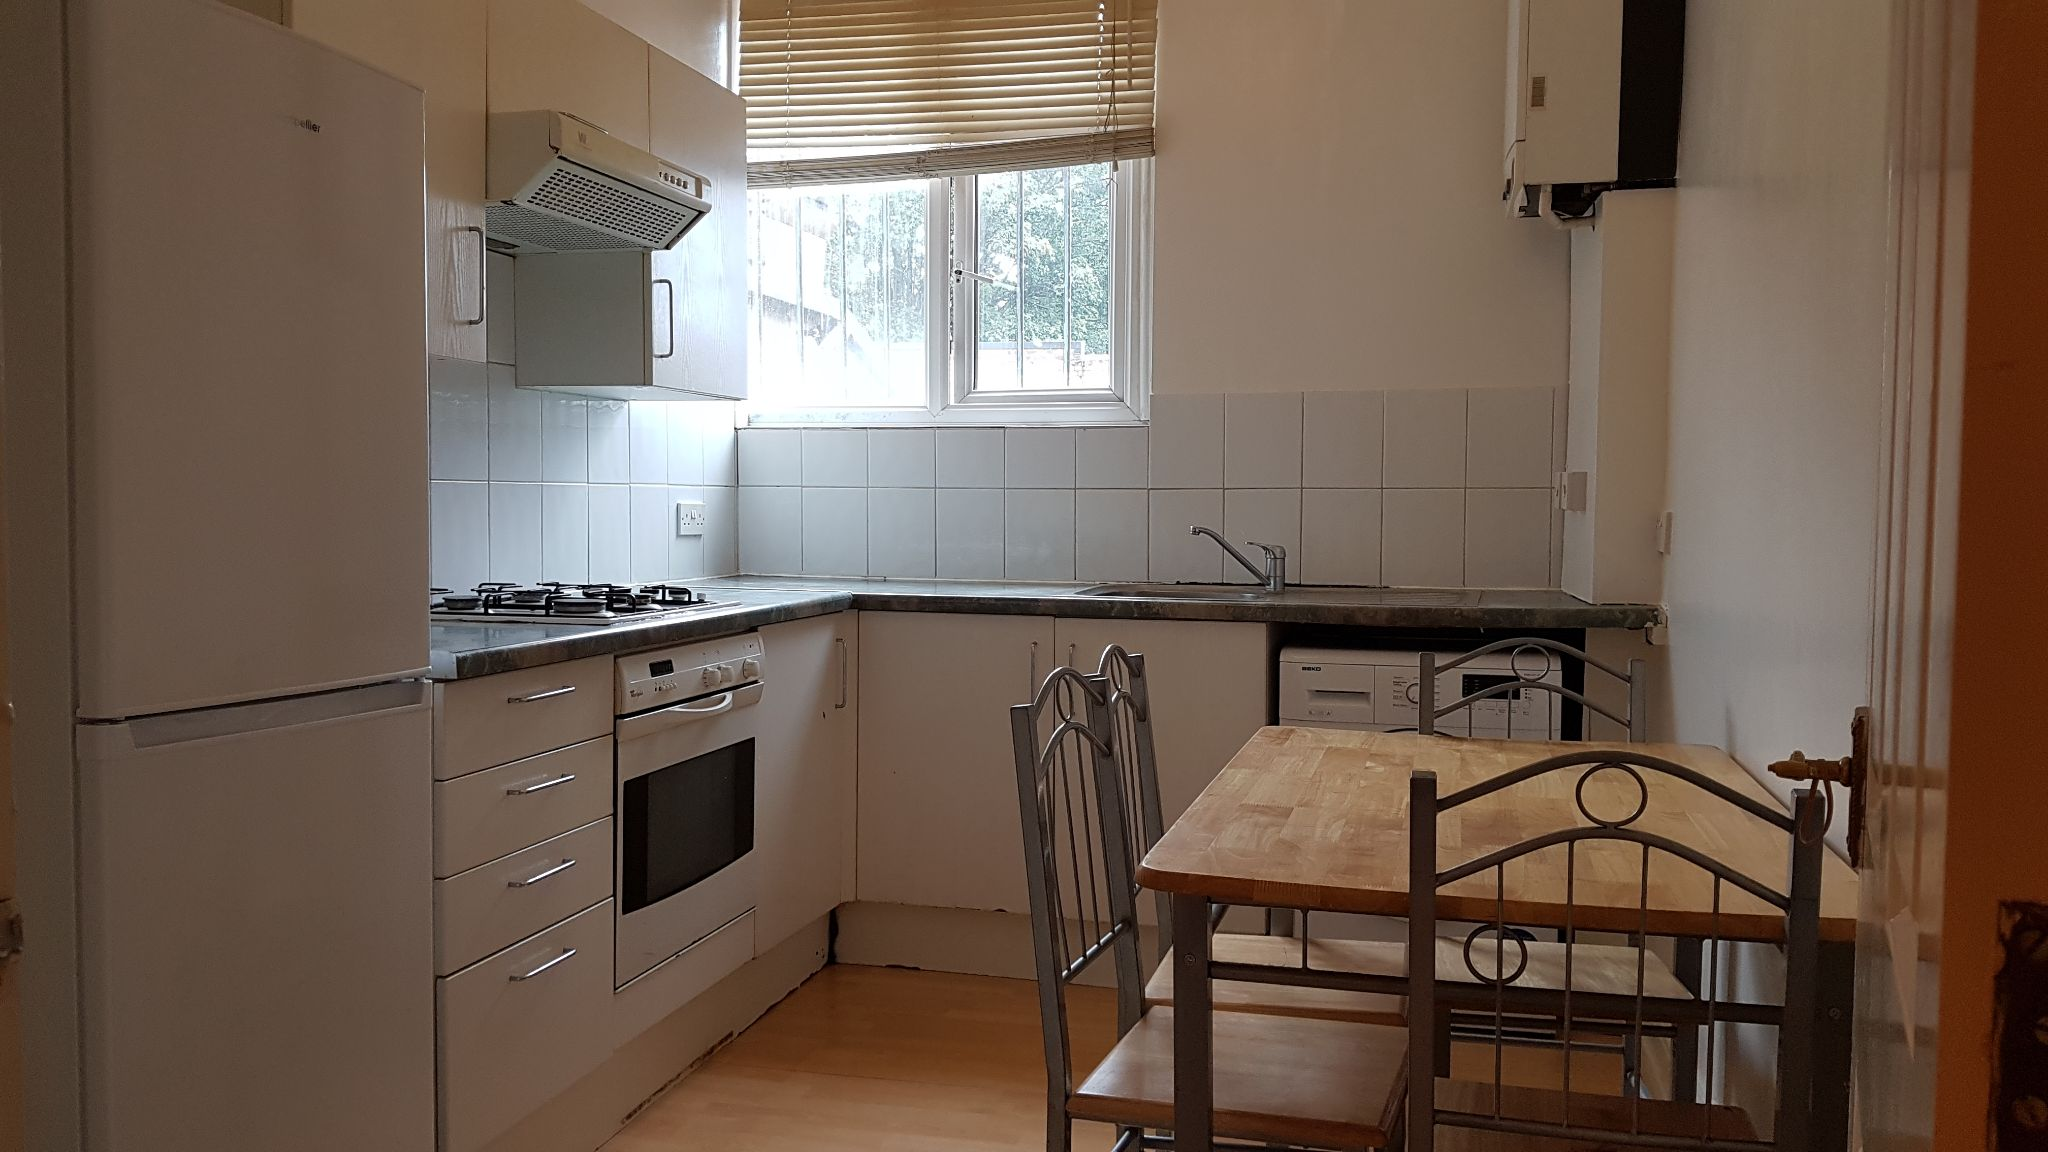 2 bedroom flat flat/apartment To Let in Cricklewood - Fully fitted kitchen/Washing machine